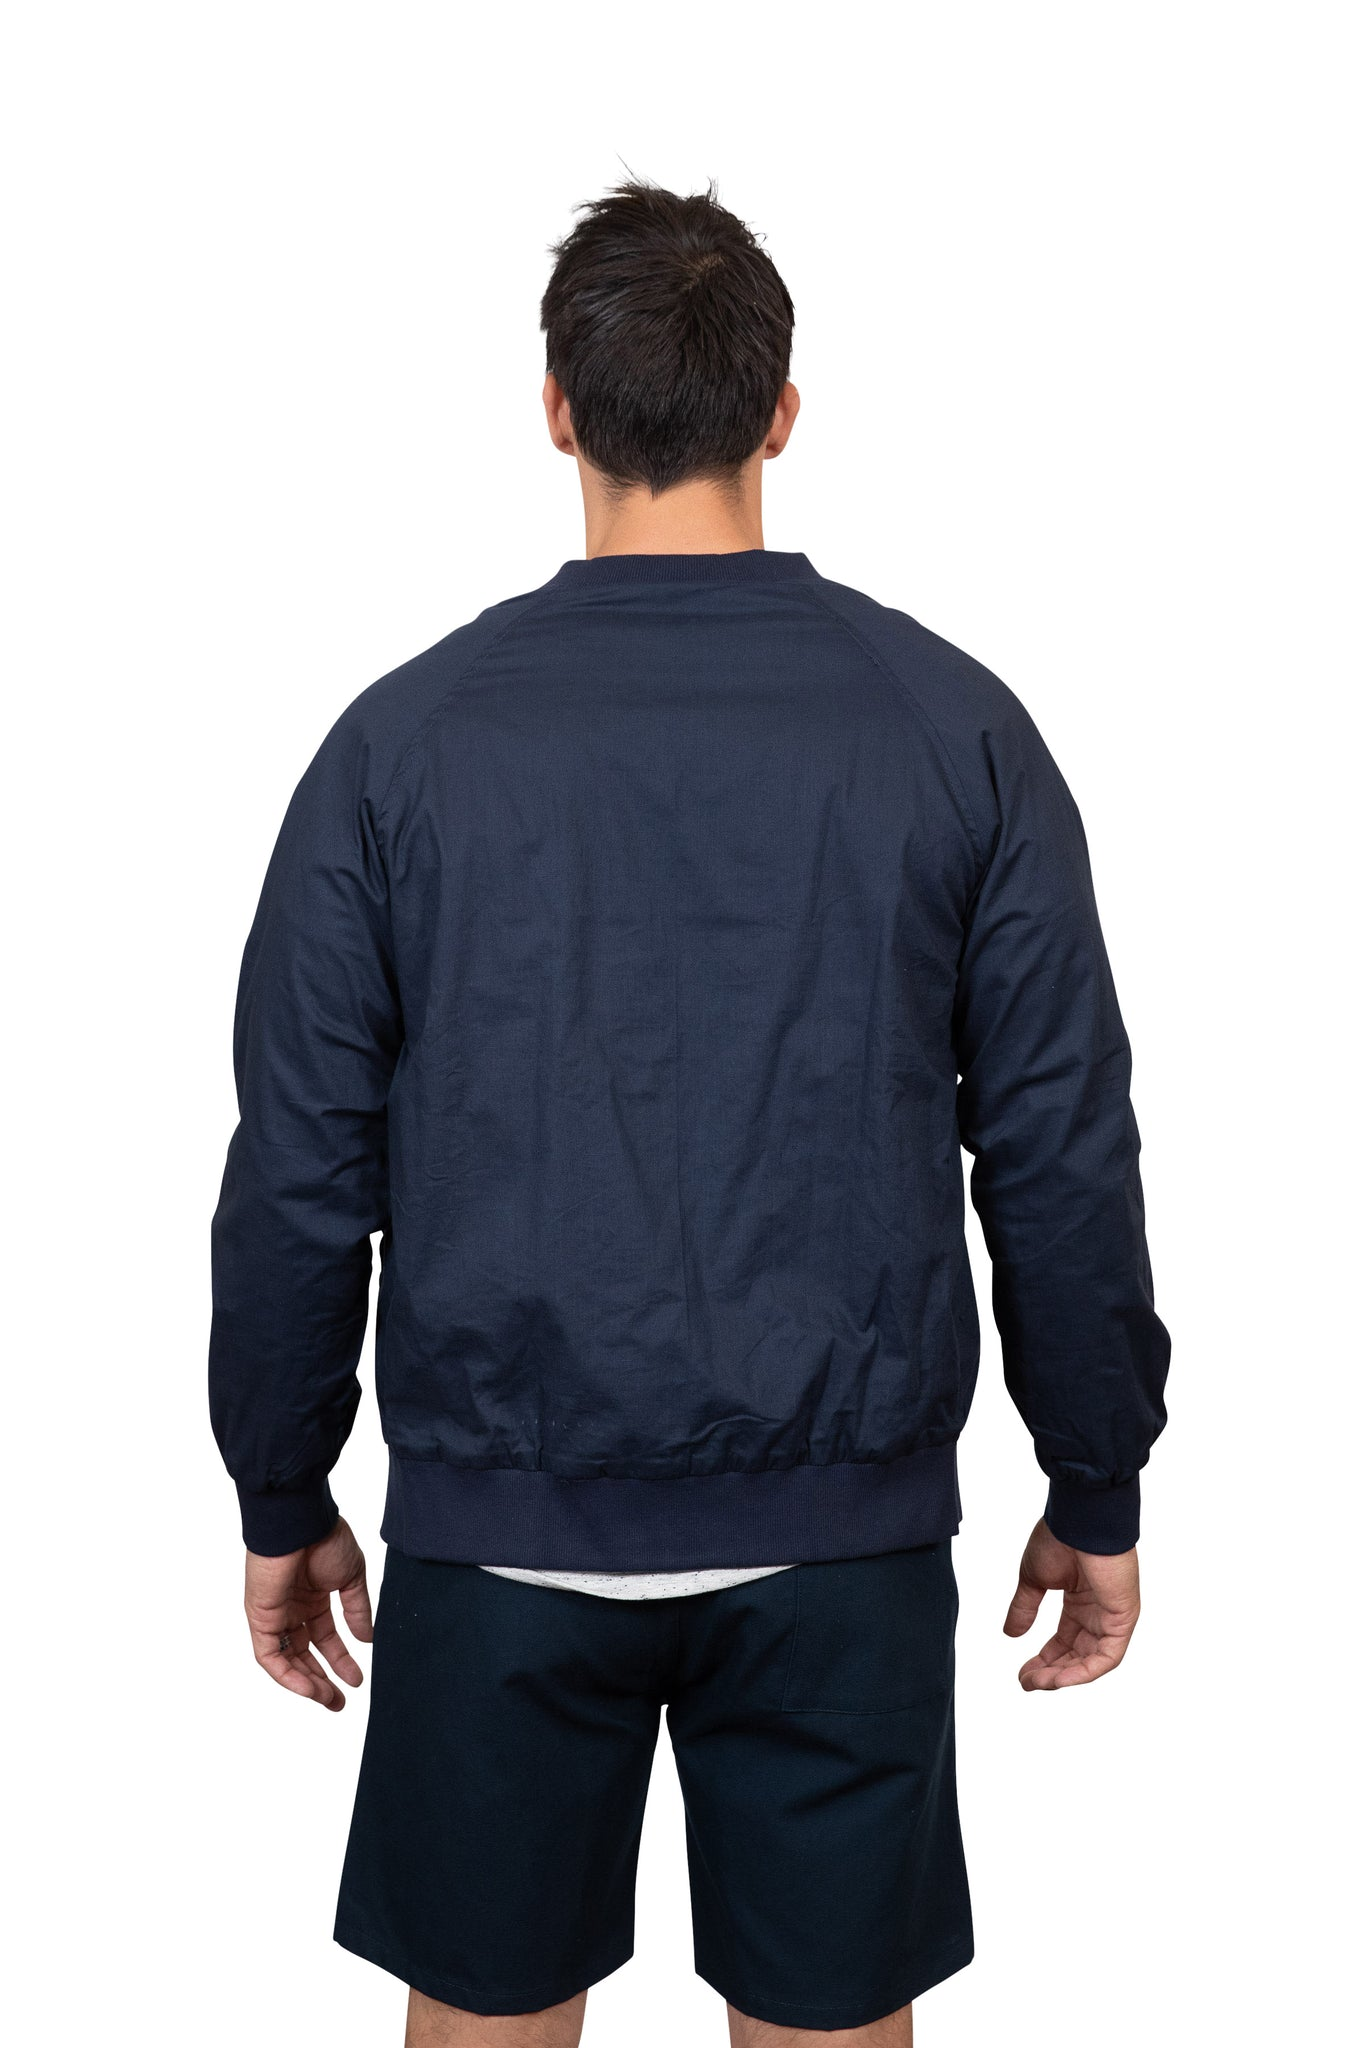 KINN 398 Collection Linen Bomber Jacket